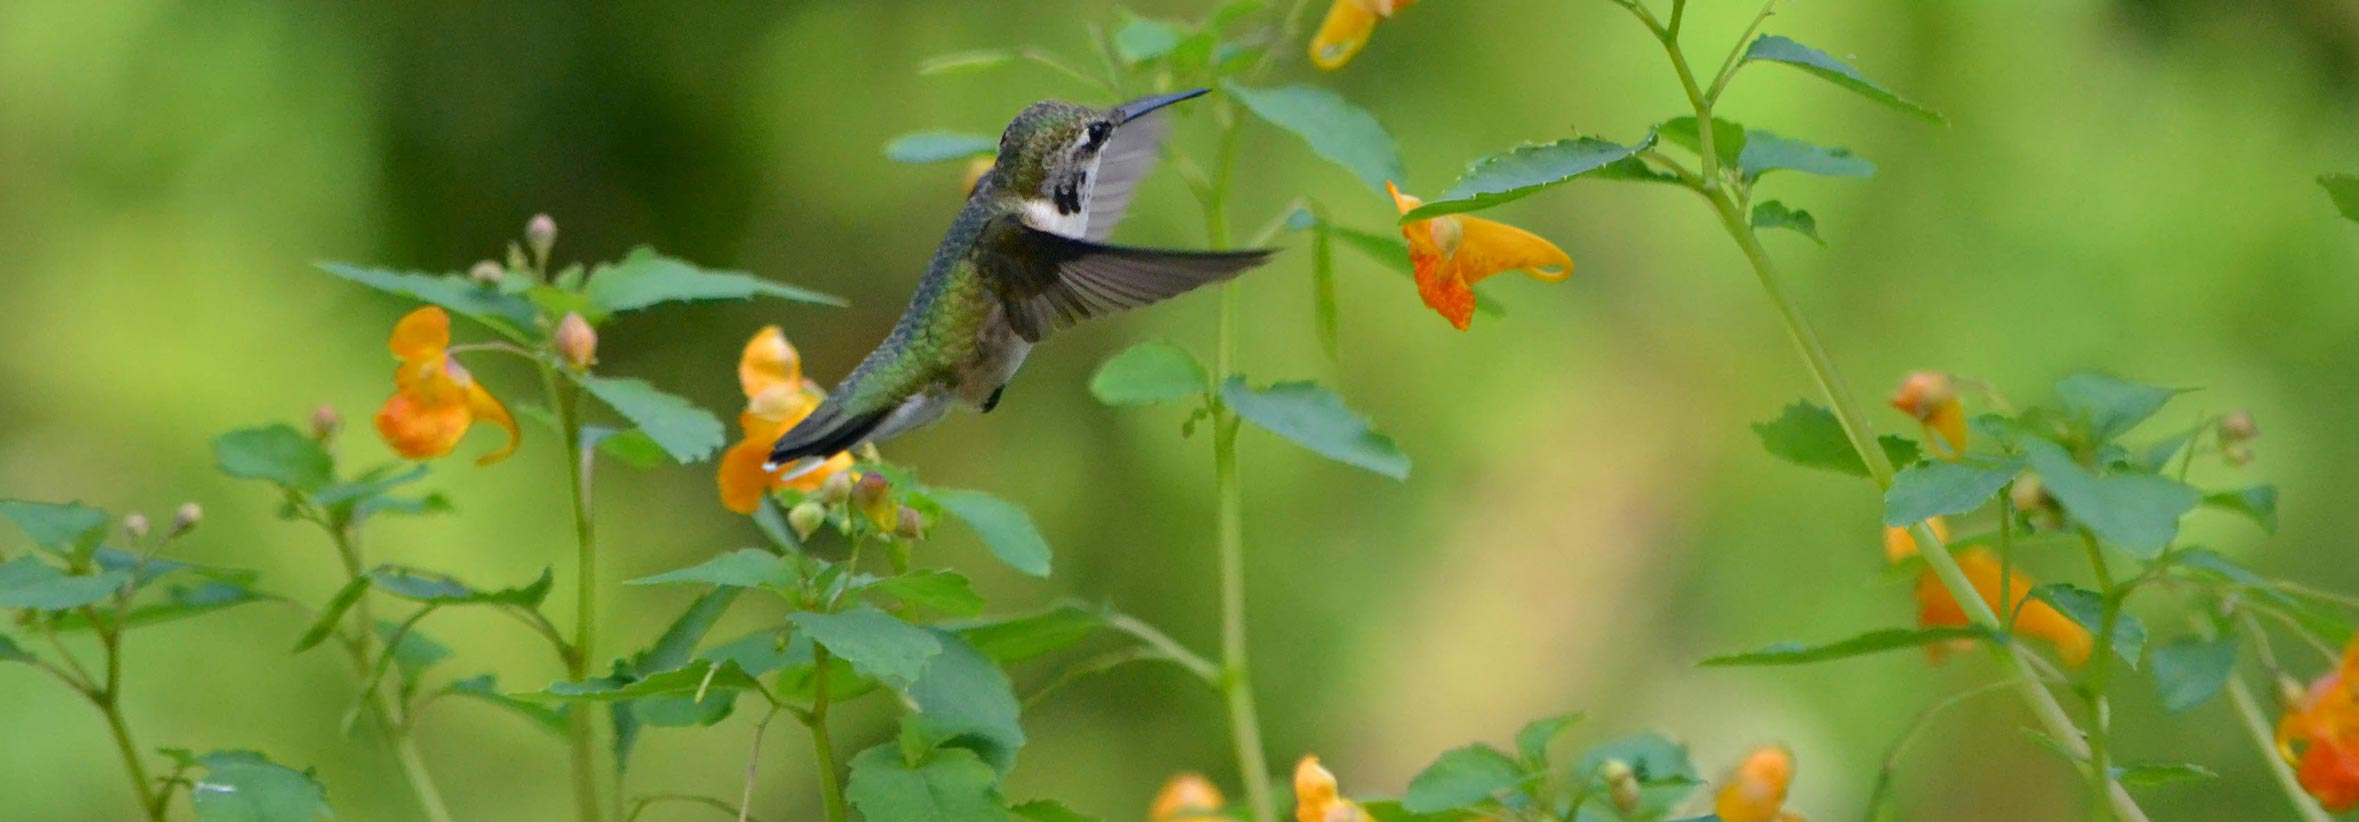 Ruby-throated Hummingbird at Jewelweed by Holly Ellerbusch